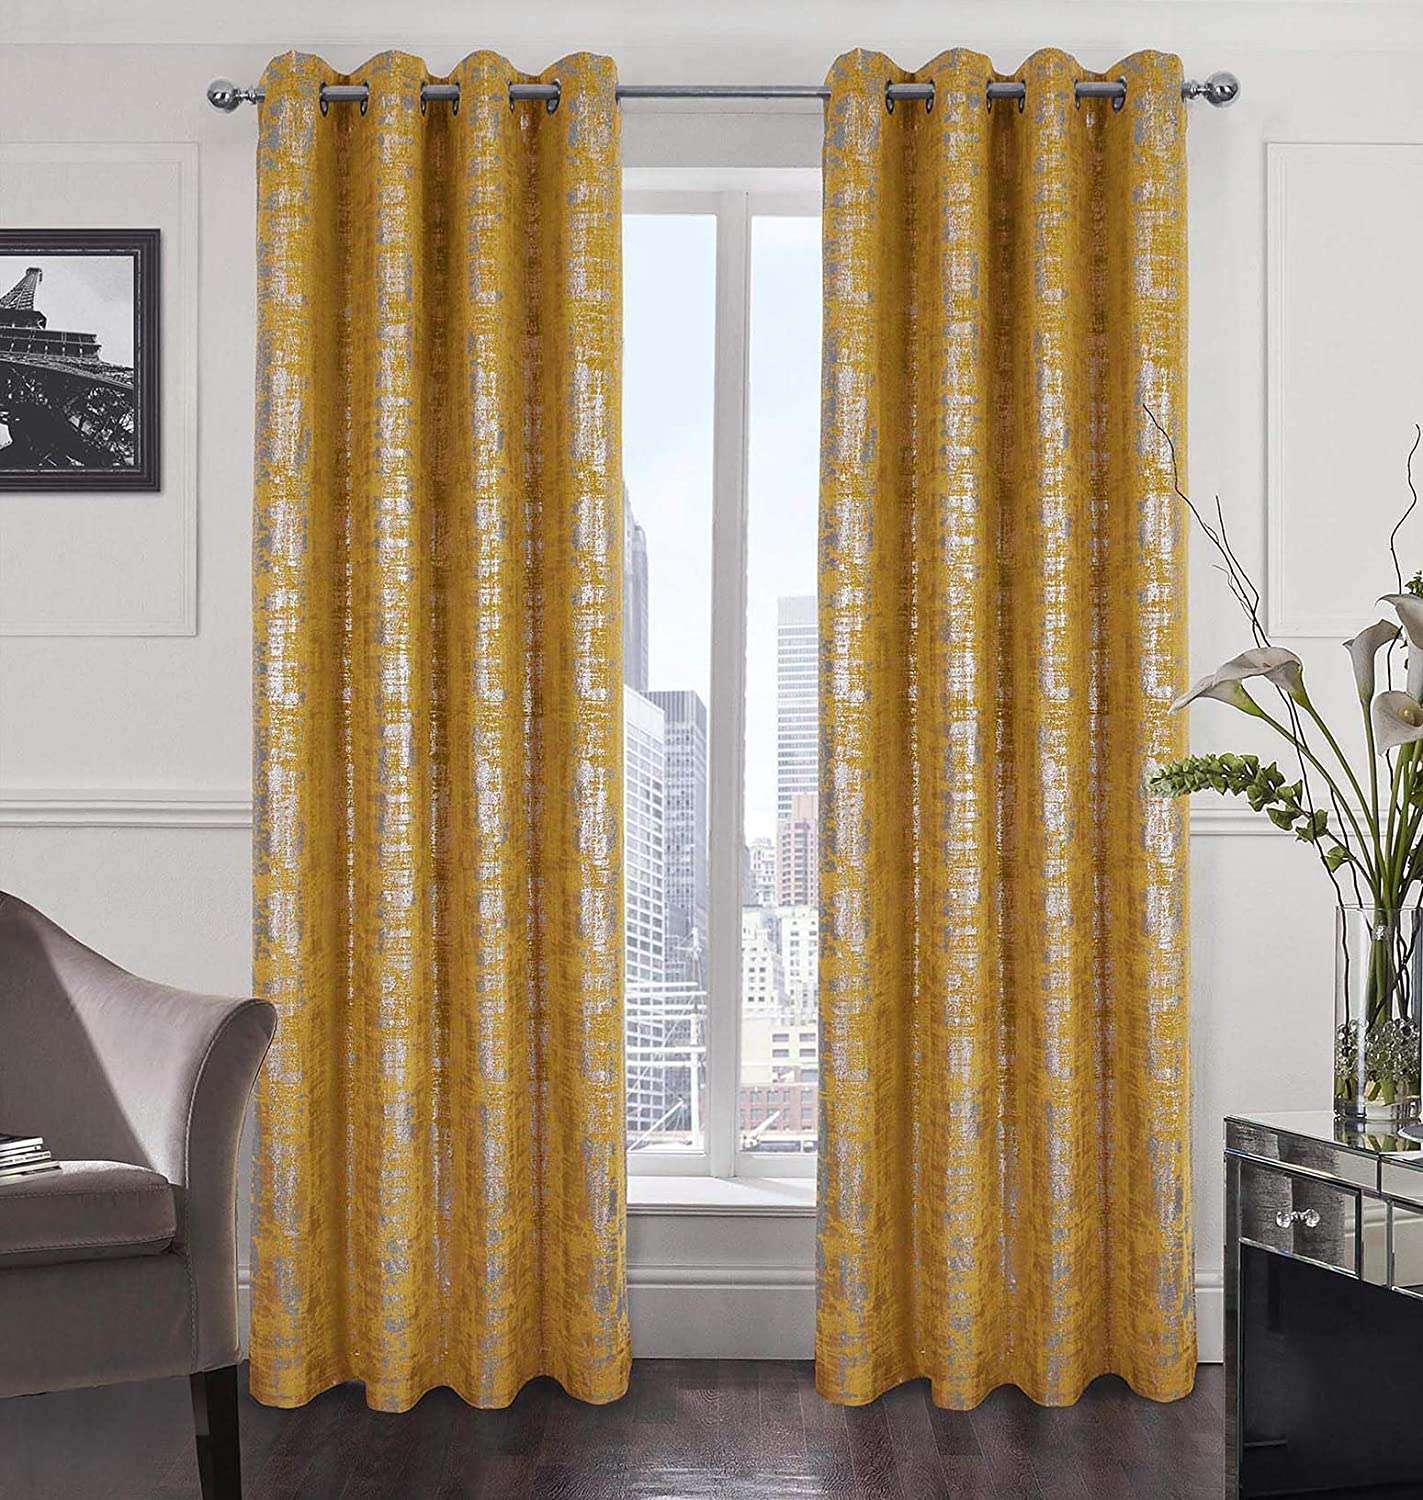 Alexandra Cole Max 50% OFF Yellow Soft Velvet Length Inch Albuquerque Mall 95 Curtains Luxury